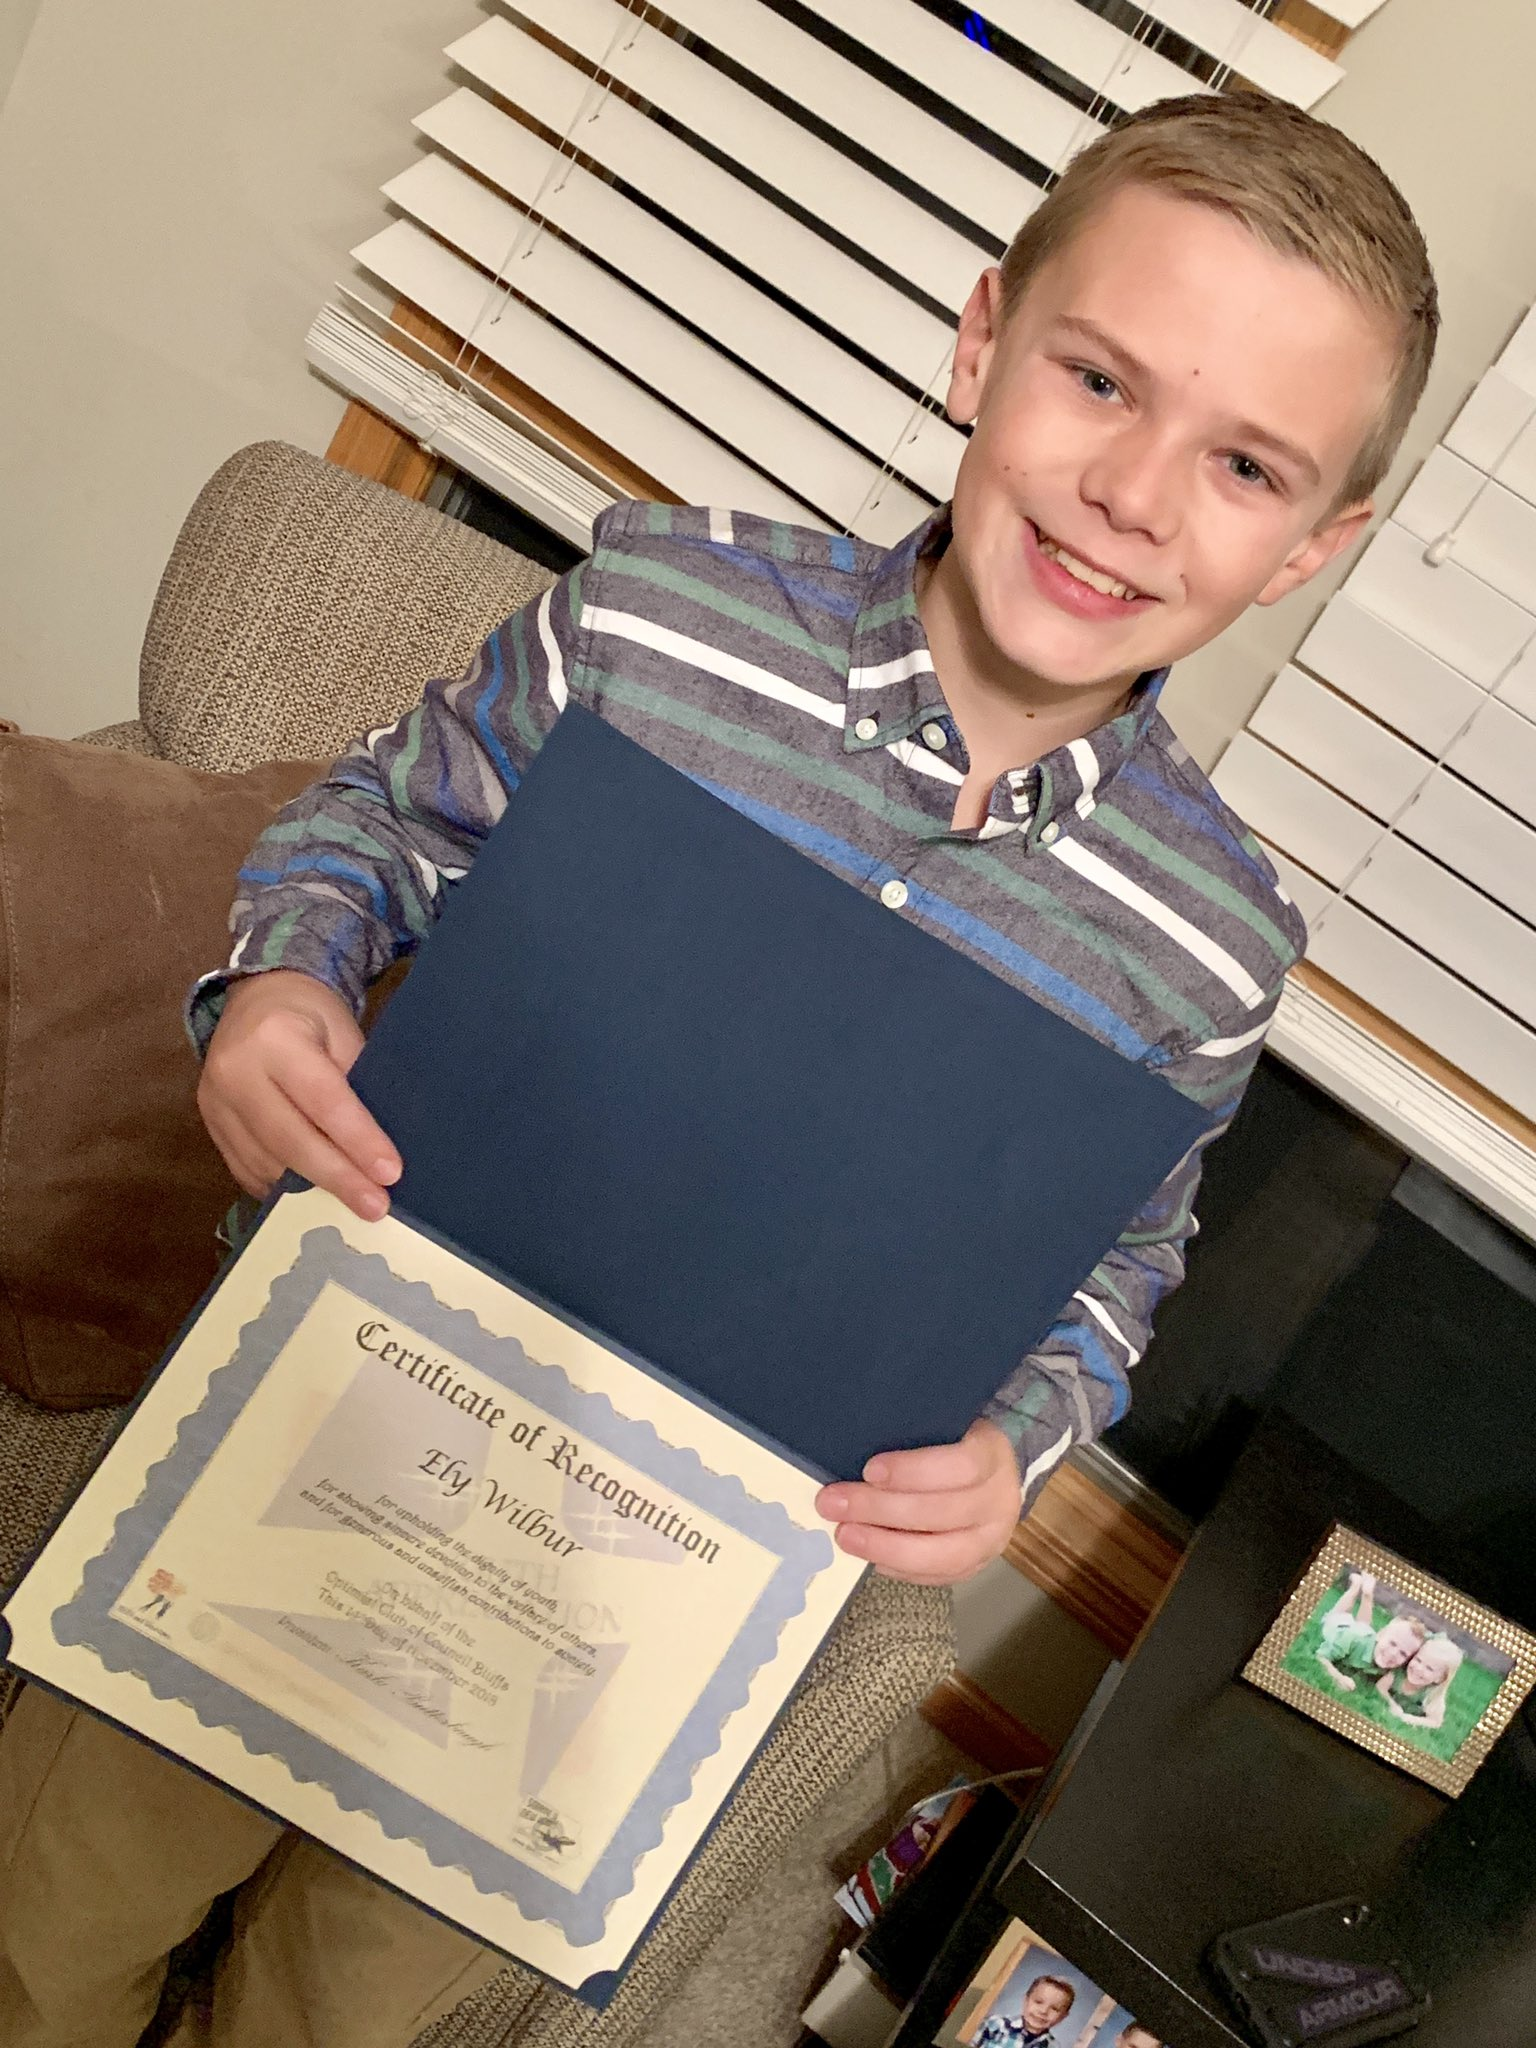 Ely was 1 of 5 boys in his class to get recognized by his teachers for the #youth #appreciation #award presented by the @OptimistClubs Iowa District Zone 5.  @LewisCentralCSD #ProudDad https://t.co/5vSxyySk5g